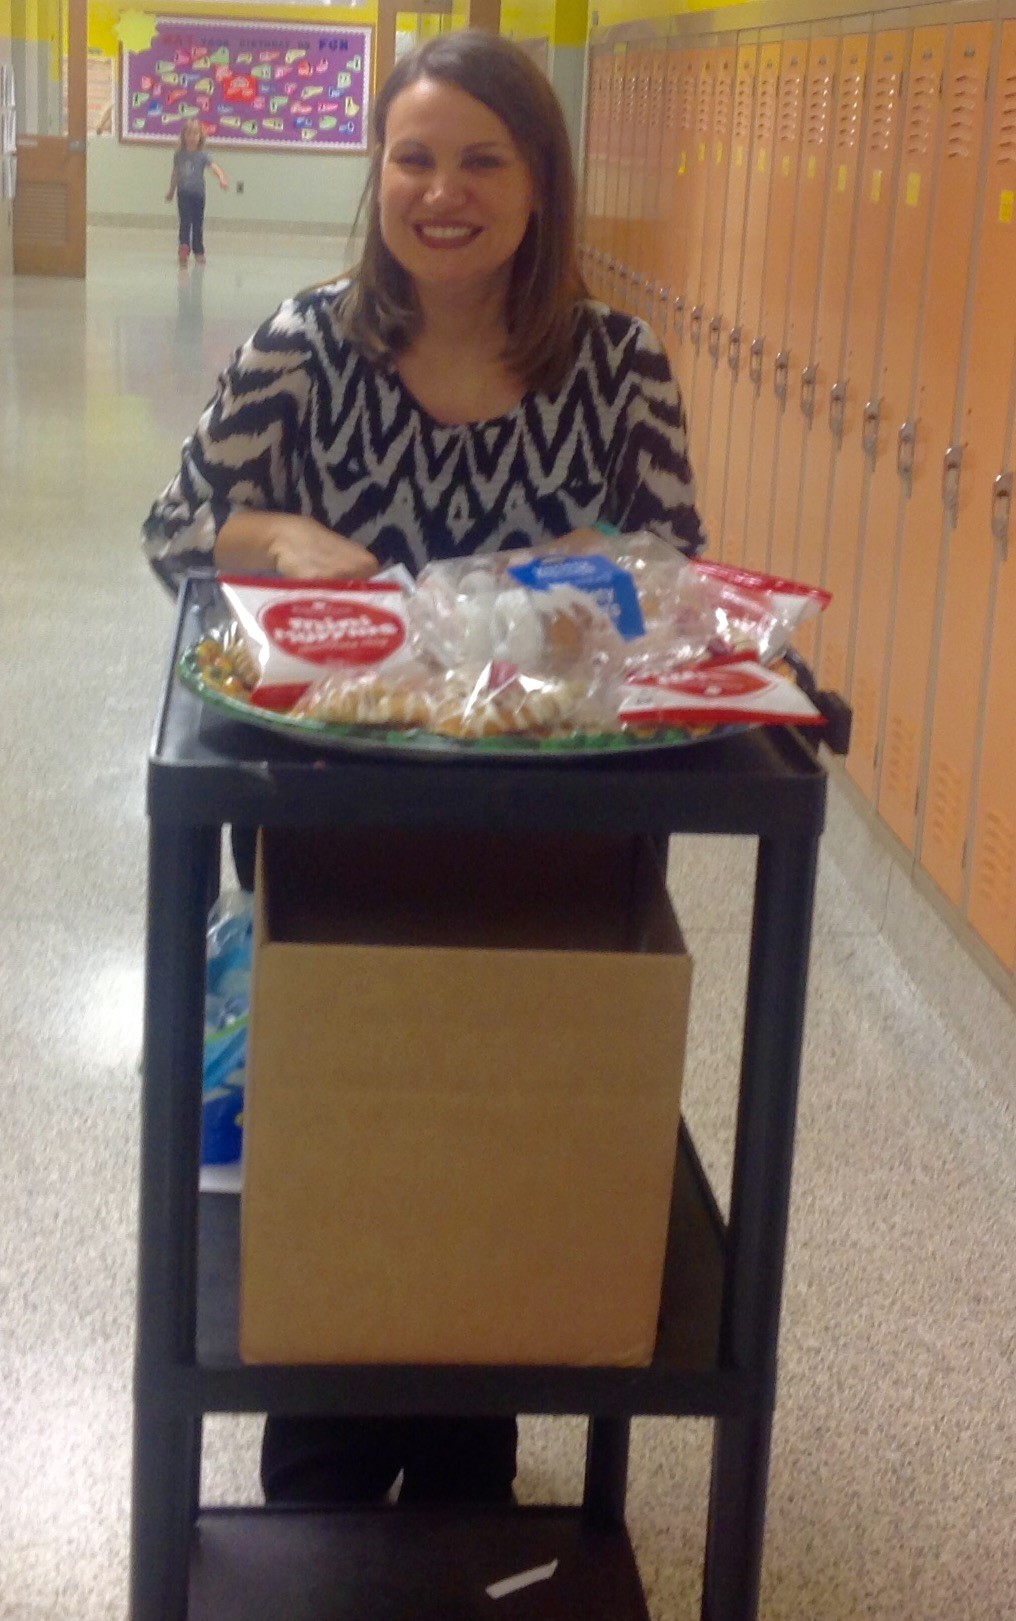 Mrs. DM delivers waters and snacks to JA Day presenters